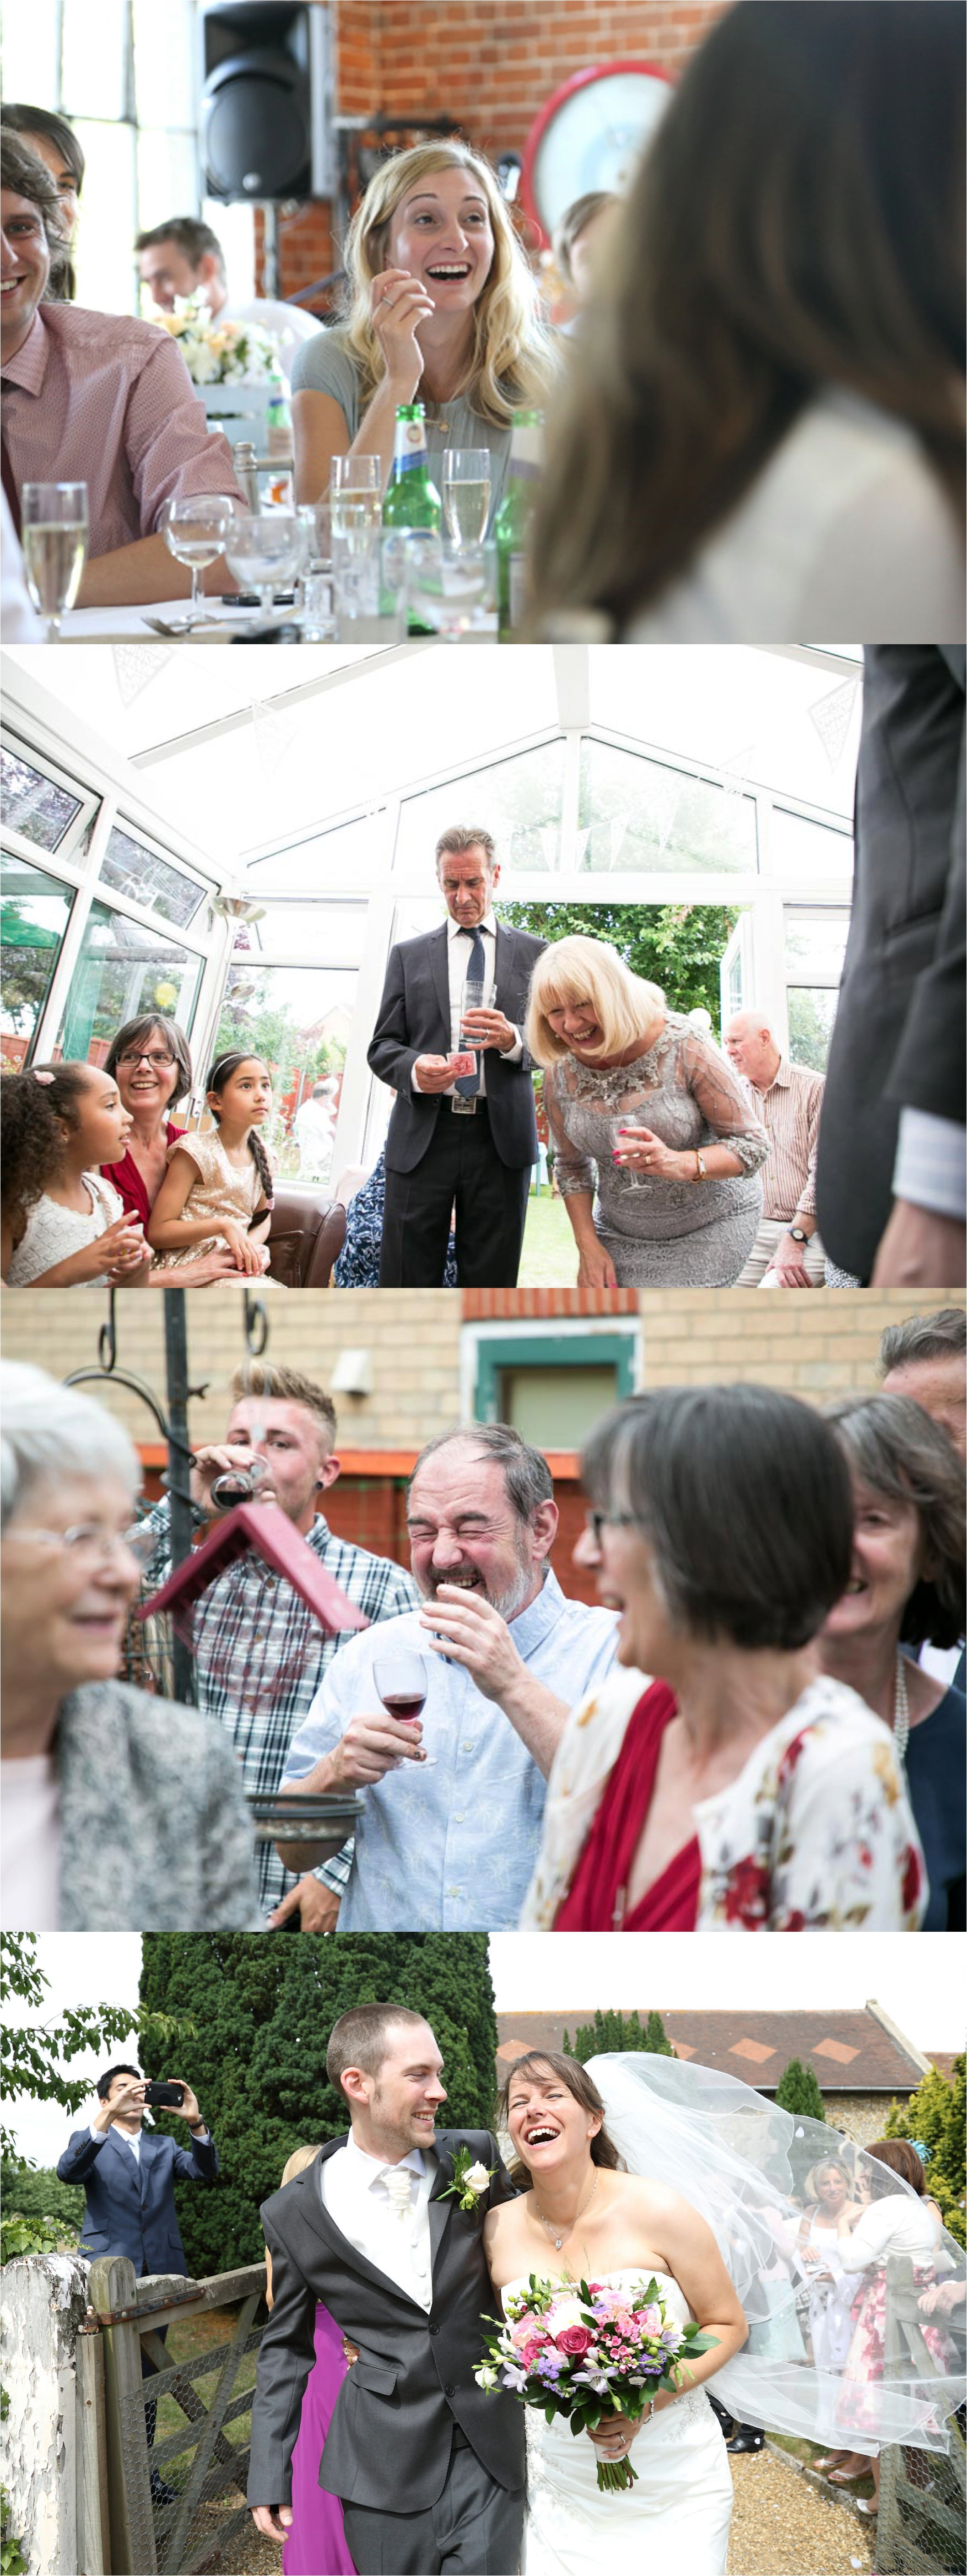 wedding photography capturing laughter and fun times, documentary wedding photography suffolk